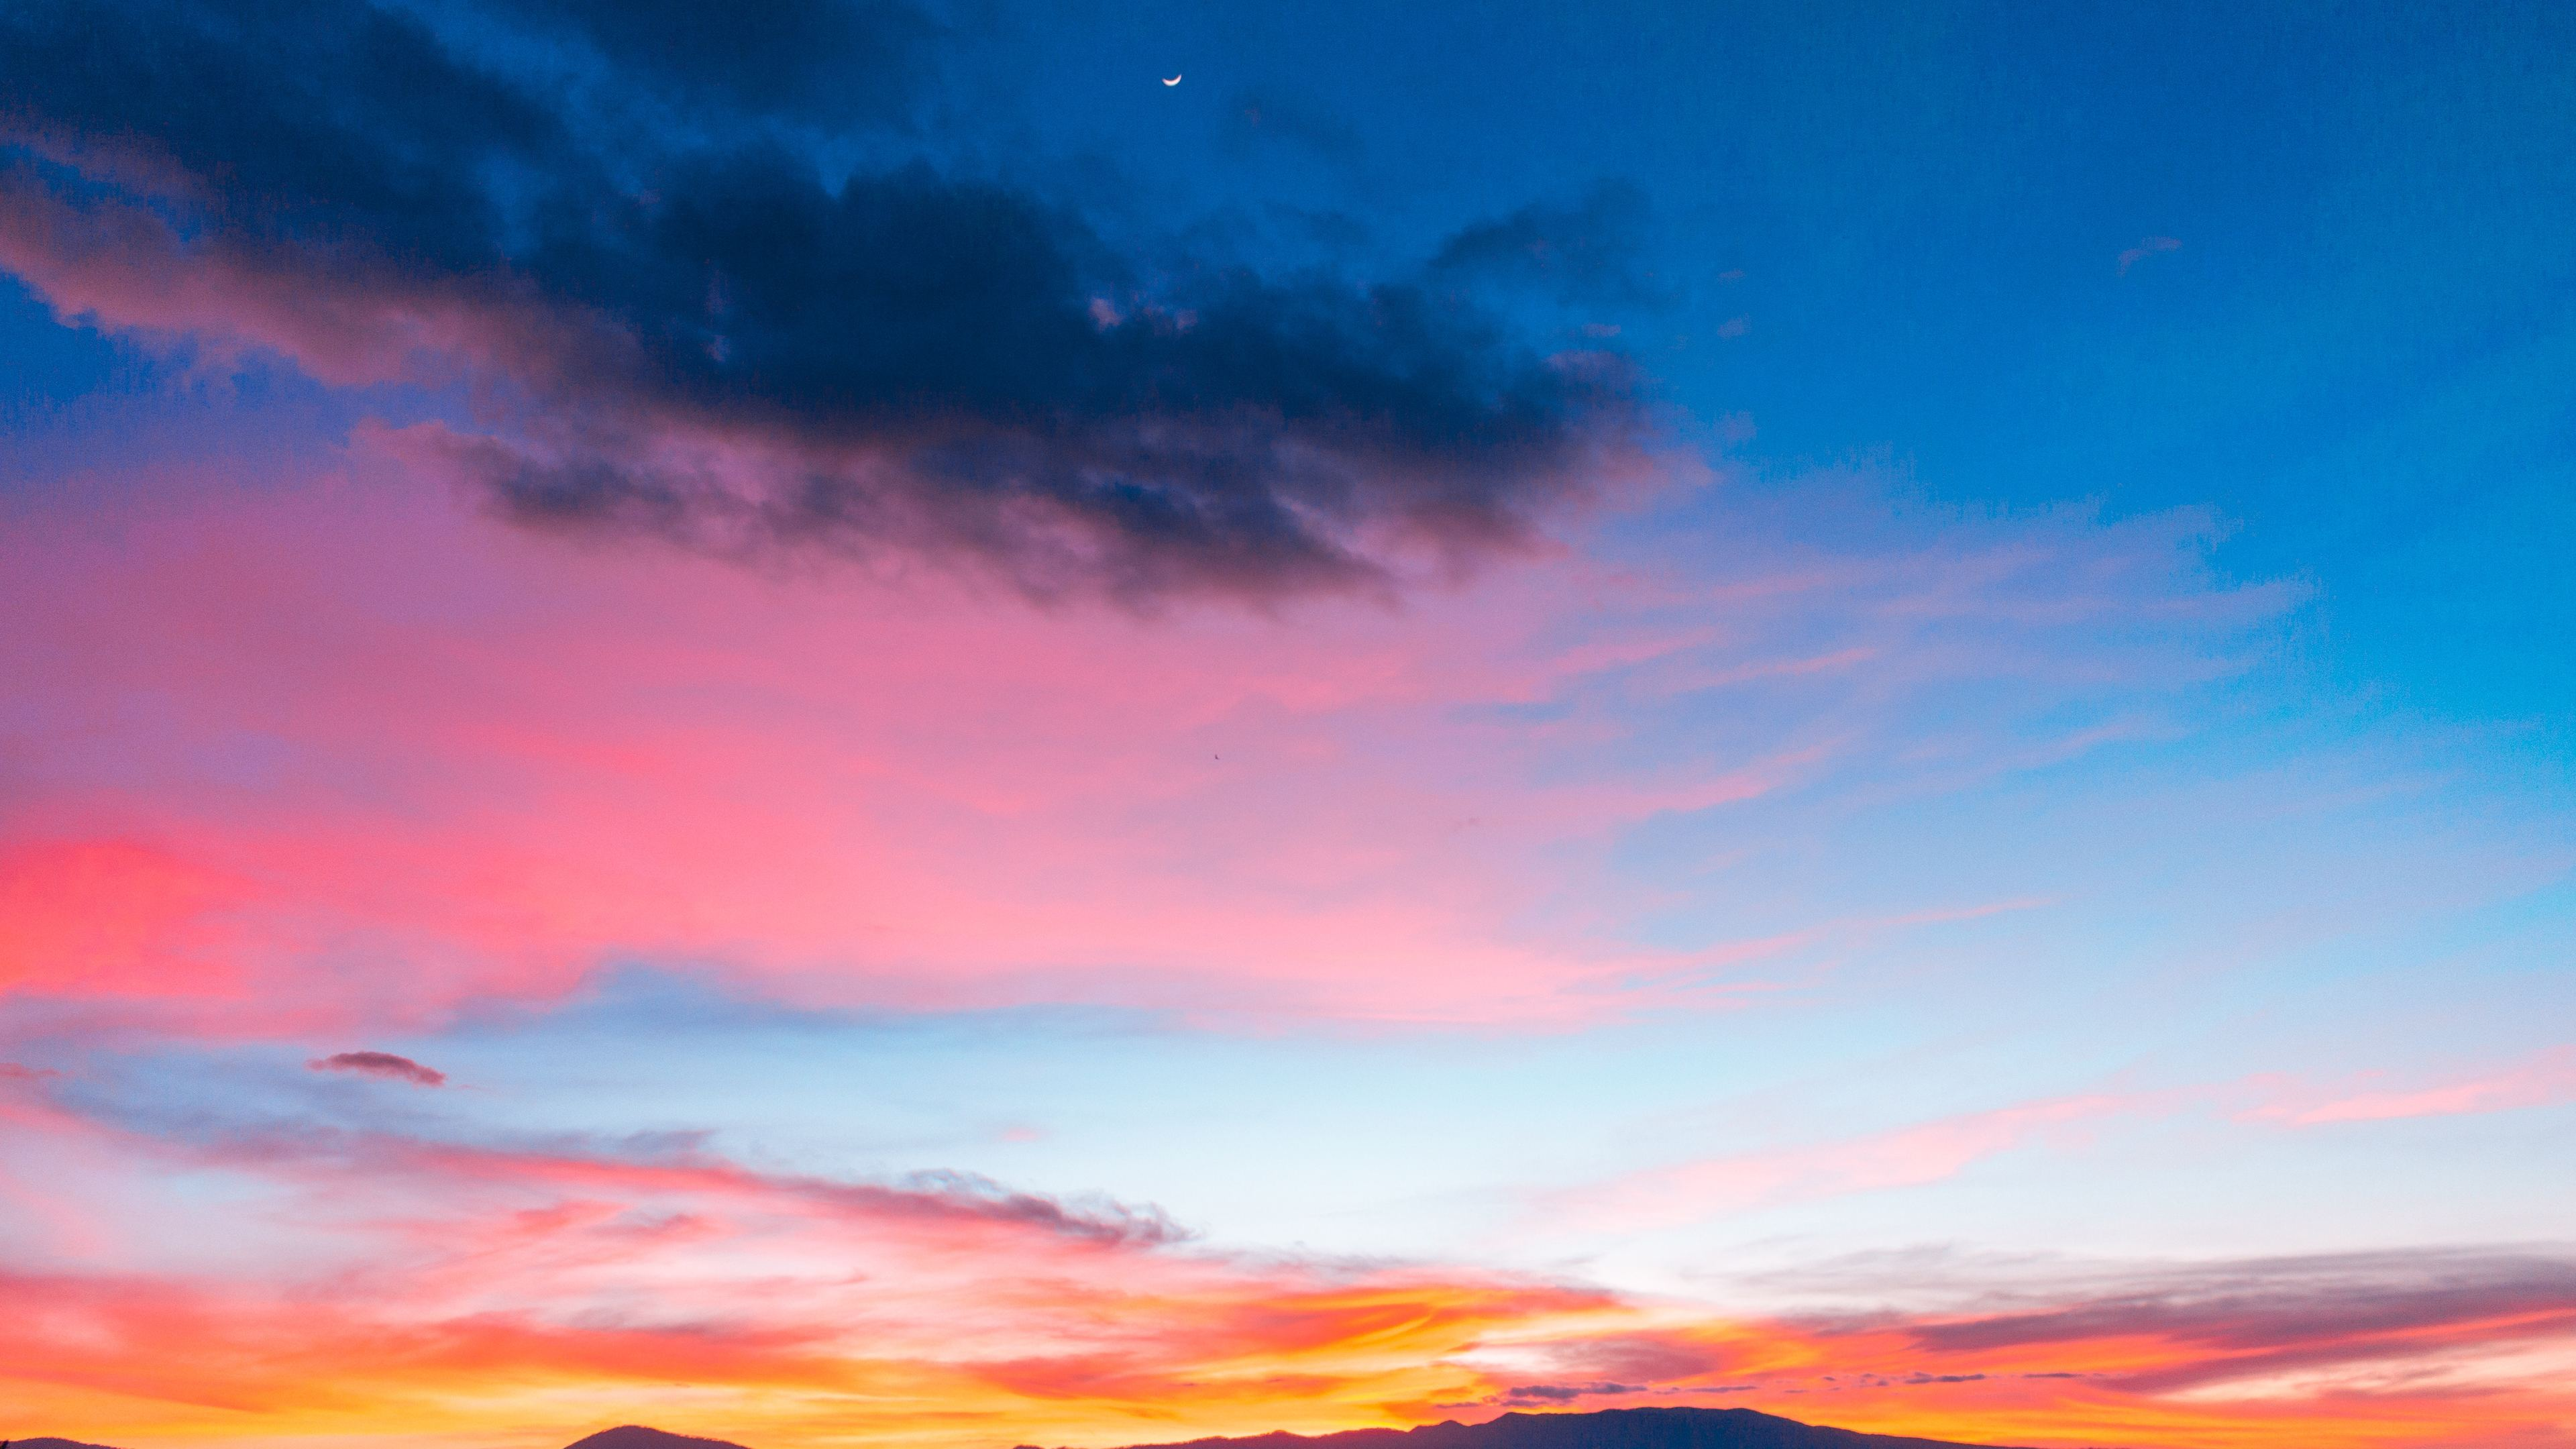 colorful sunset sky 4k 1551643151 - Colorful Sunset Sky 4k - sunset wallpapers, sky wallpapers, nature wallpapers, hd-wallpapers, colorful wallpapers, 5k wallpapers, 4k-wallpapers